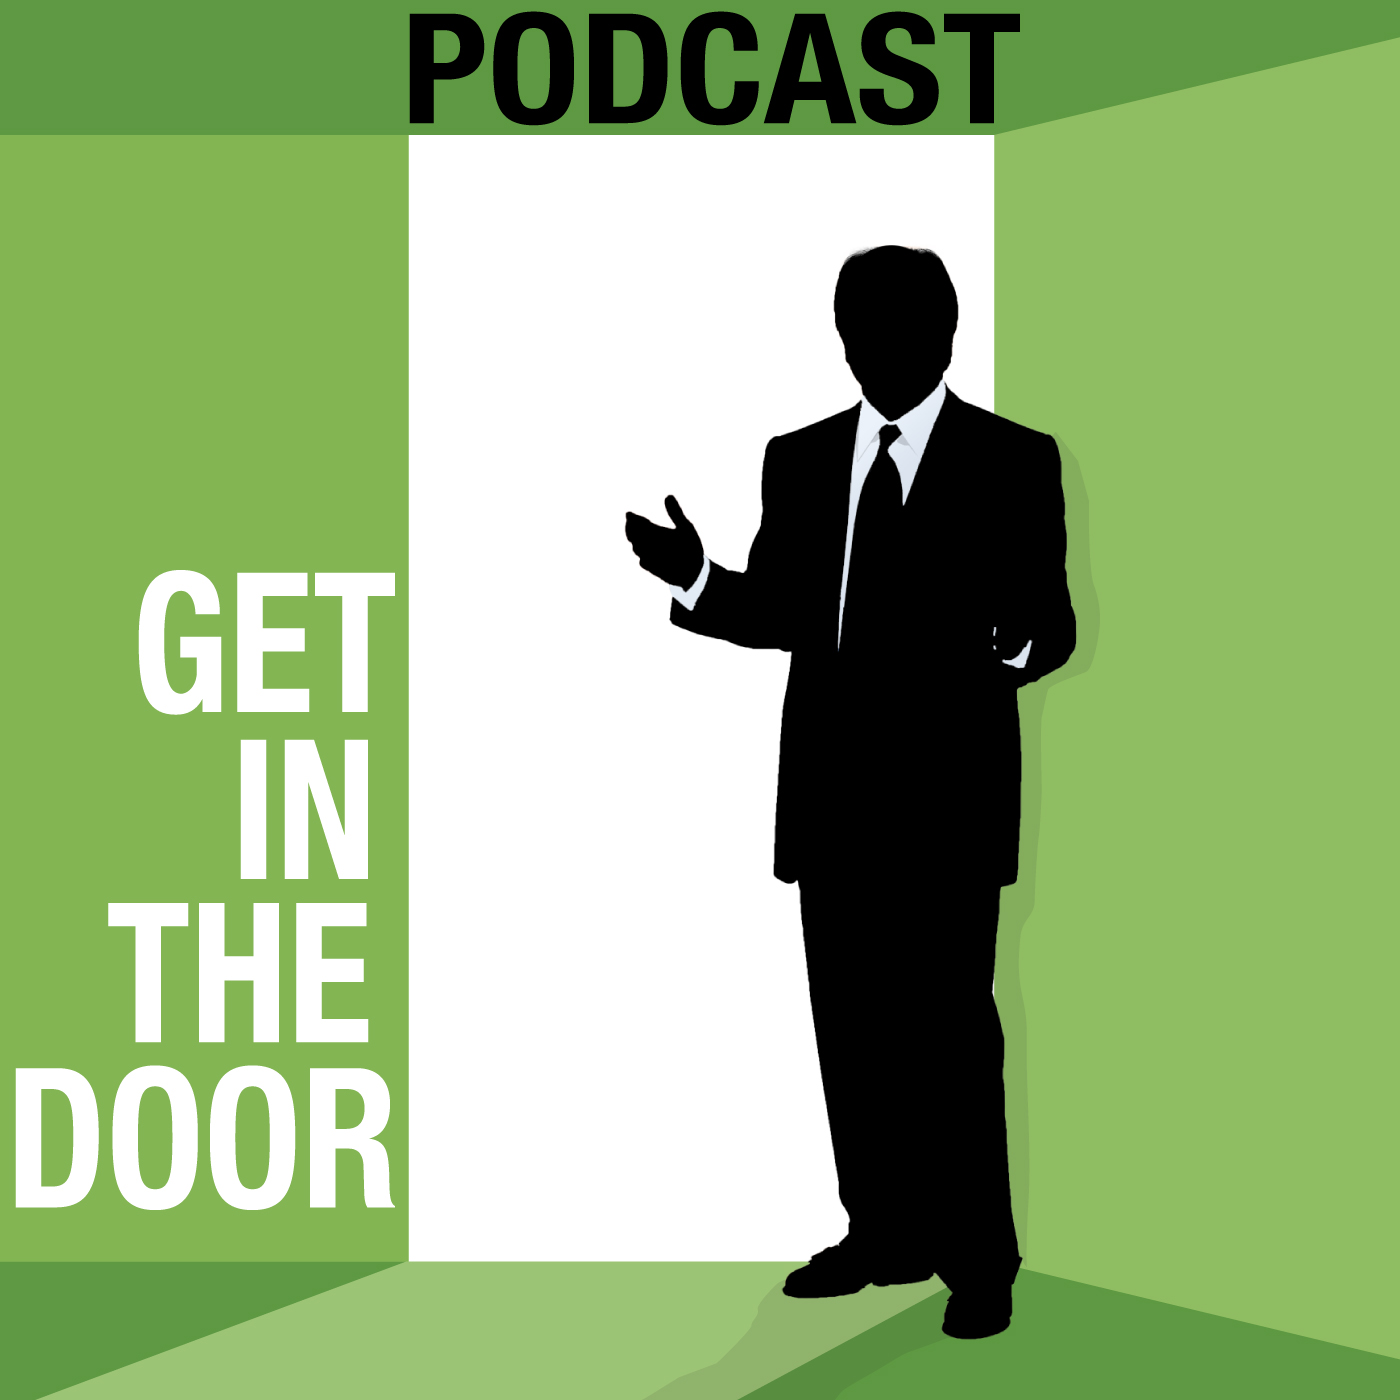 Get in the Door Podcast with Steve Kloyda and Professor Scott Plum